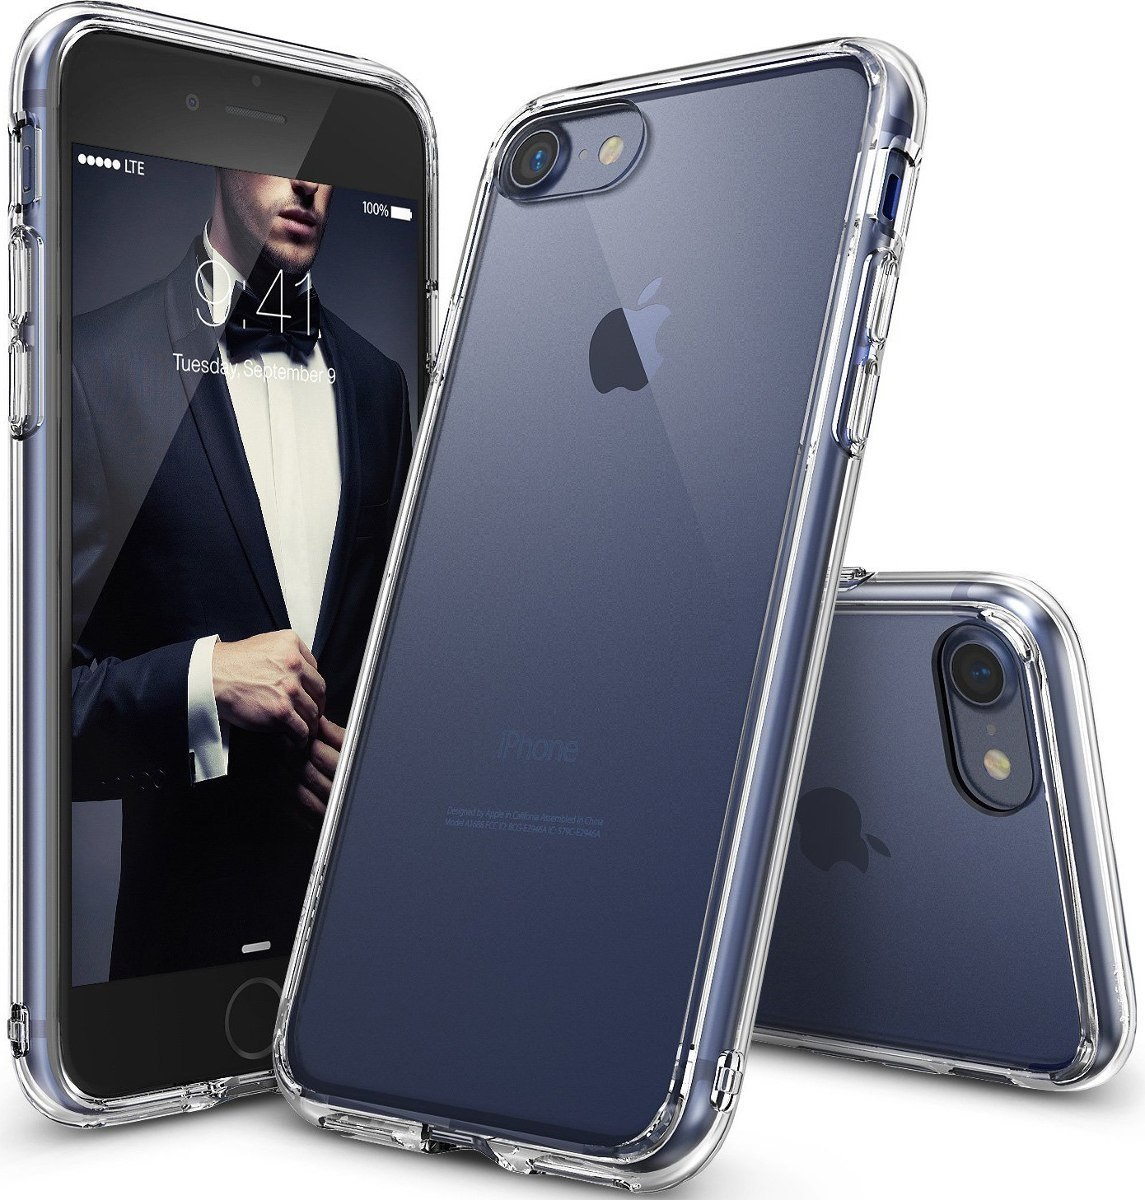 503fe0de8bf funda rigida transparente antigolpe iphone 5 6s 7 8 plus x. Cargando zoom.